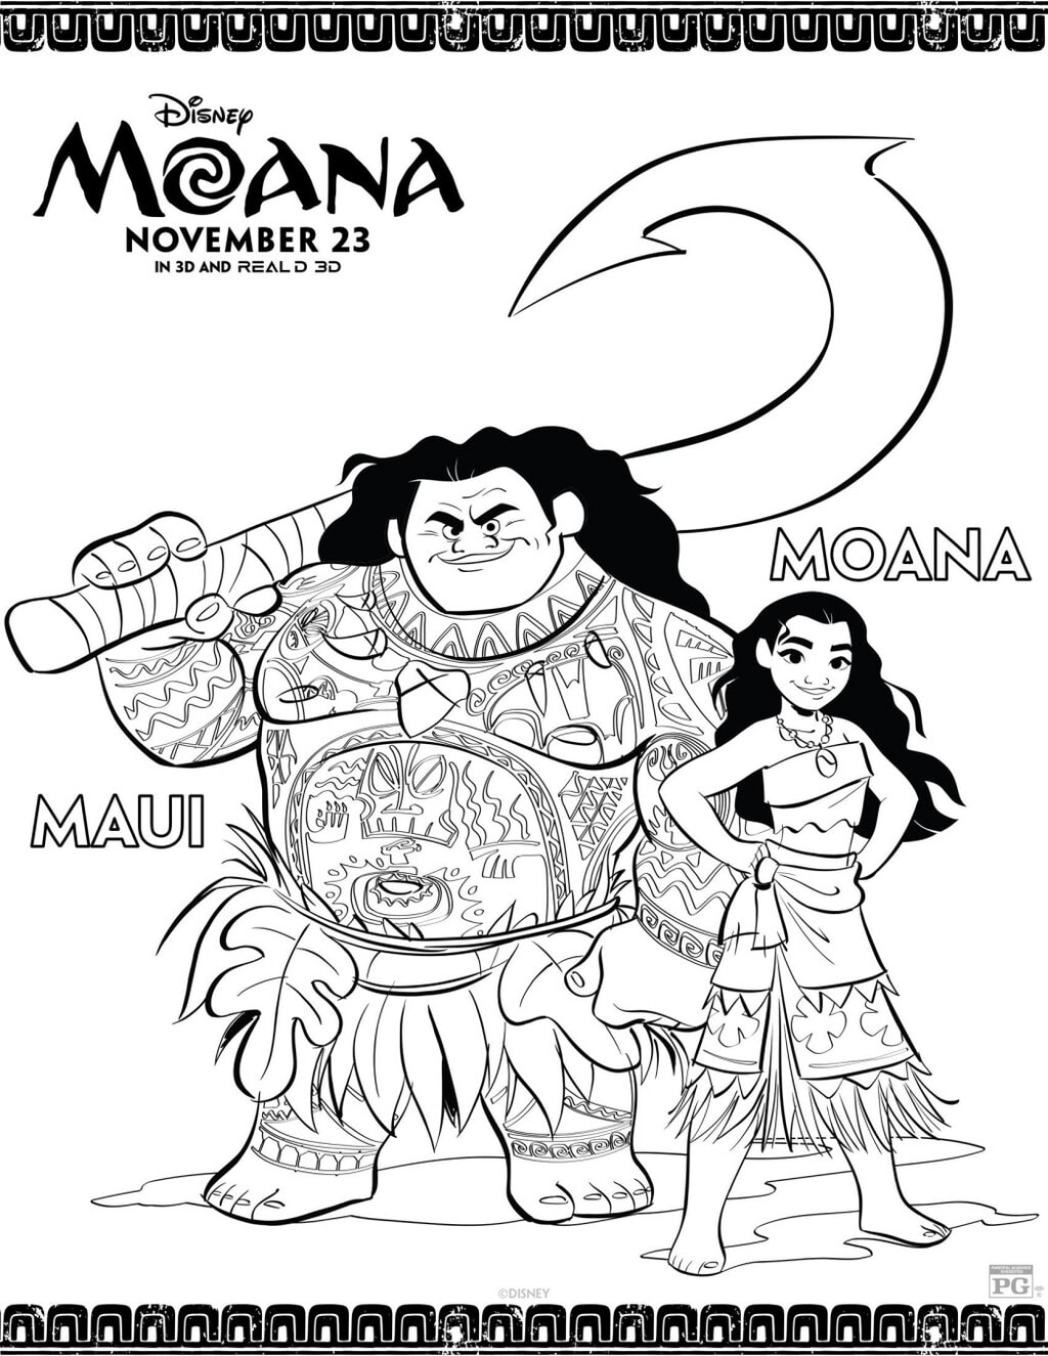 Moana Coloring Sheet with Moana and Maui